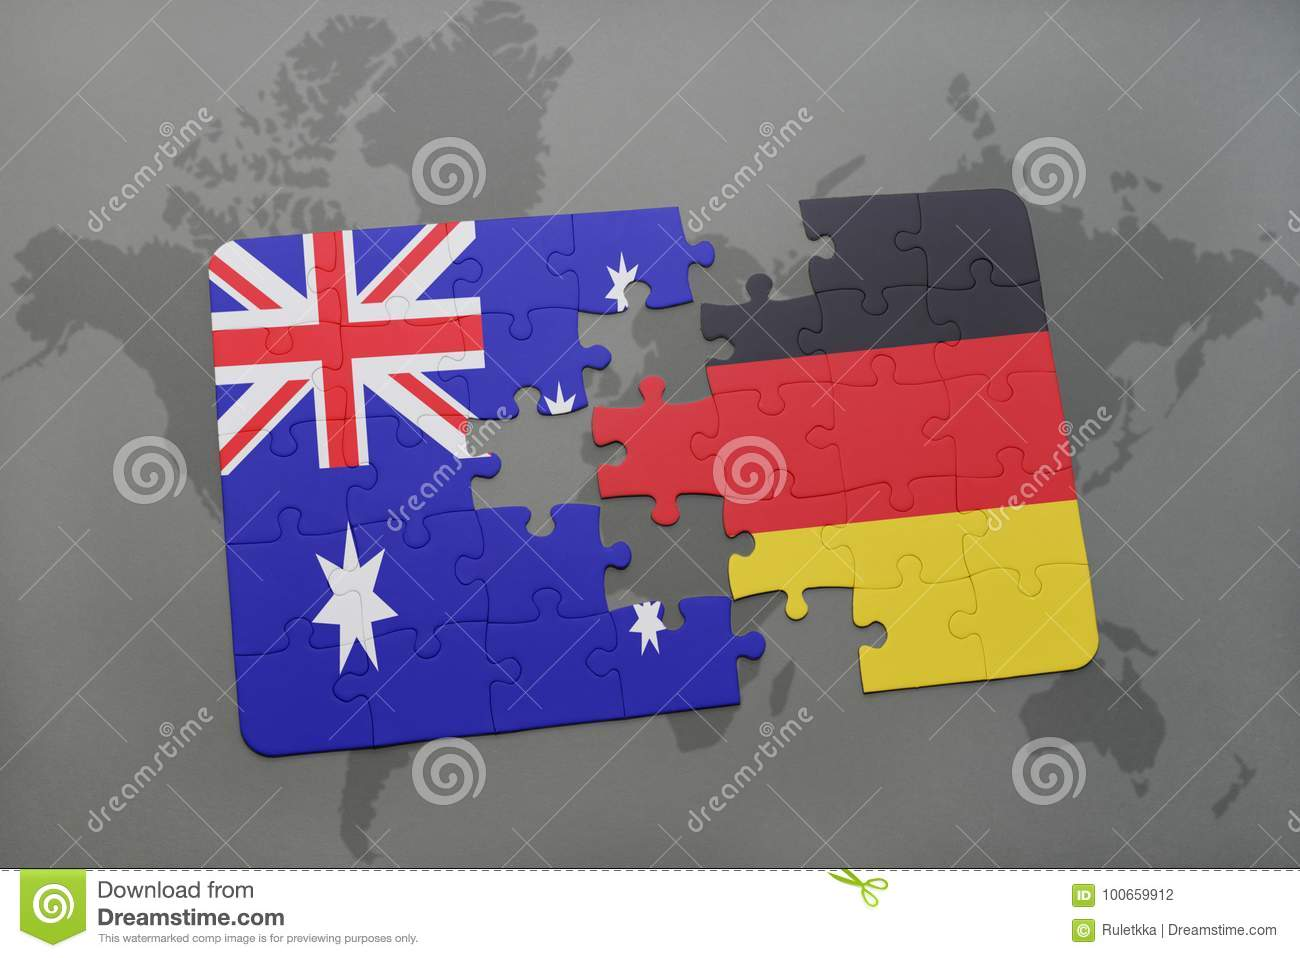 Berlin Puzzle Puzzle With The National Flag Of Australia And Germany On A World